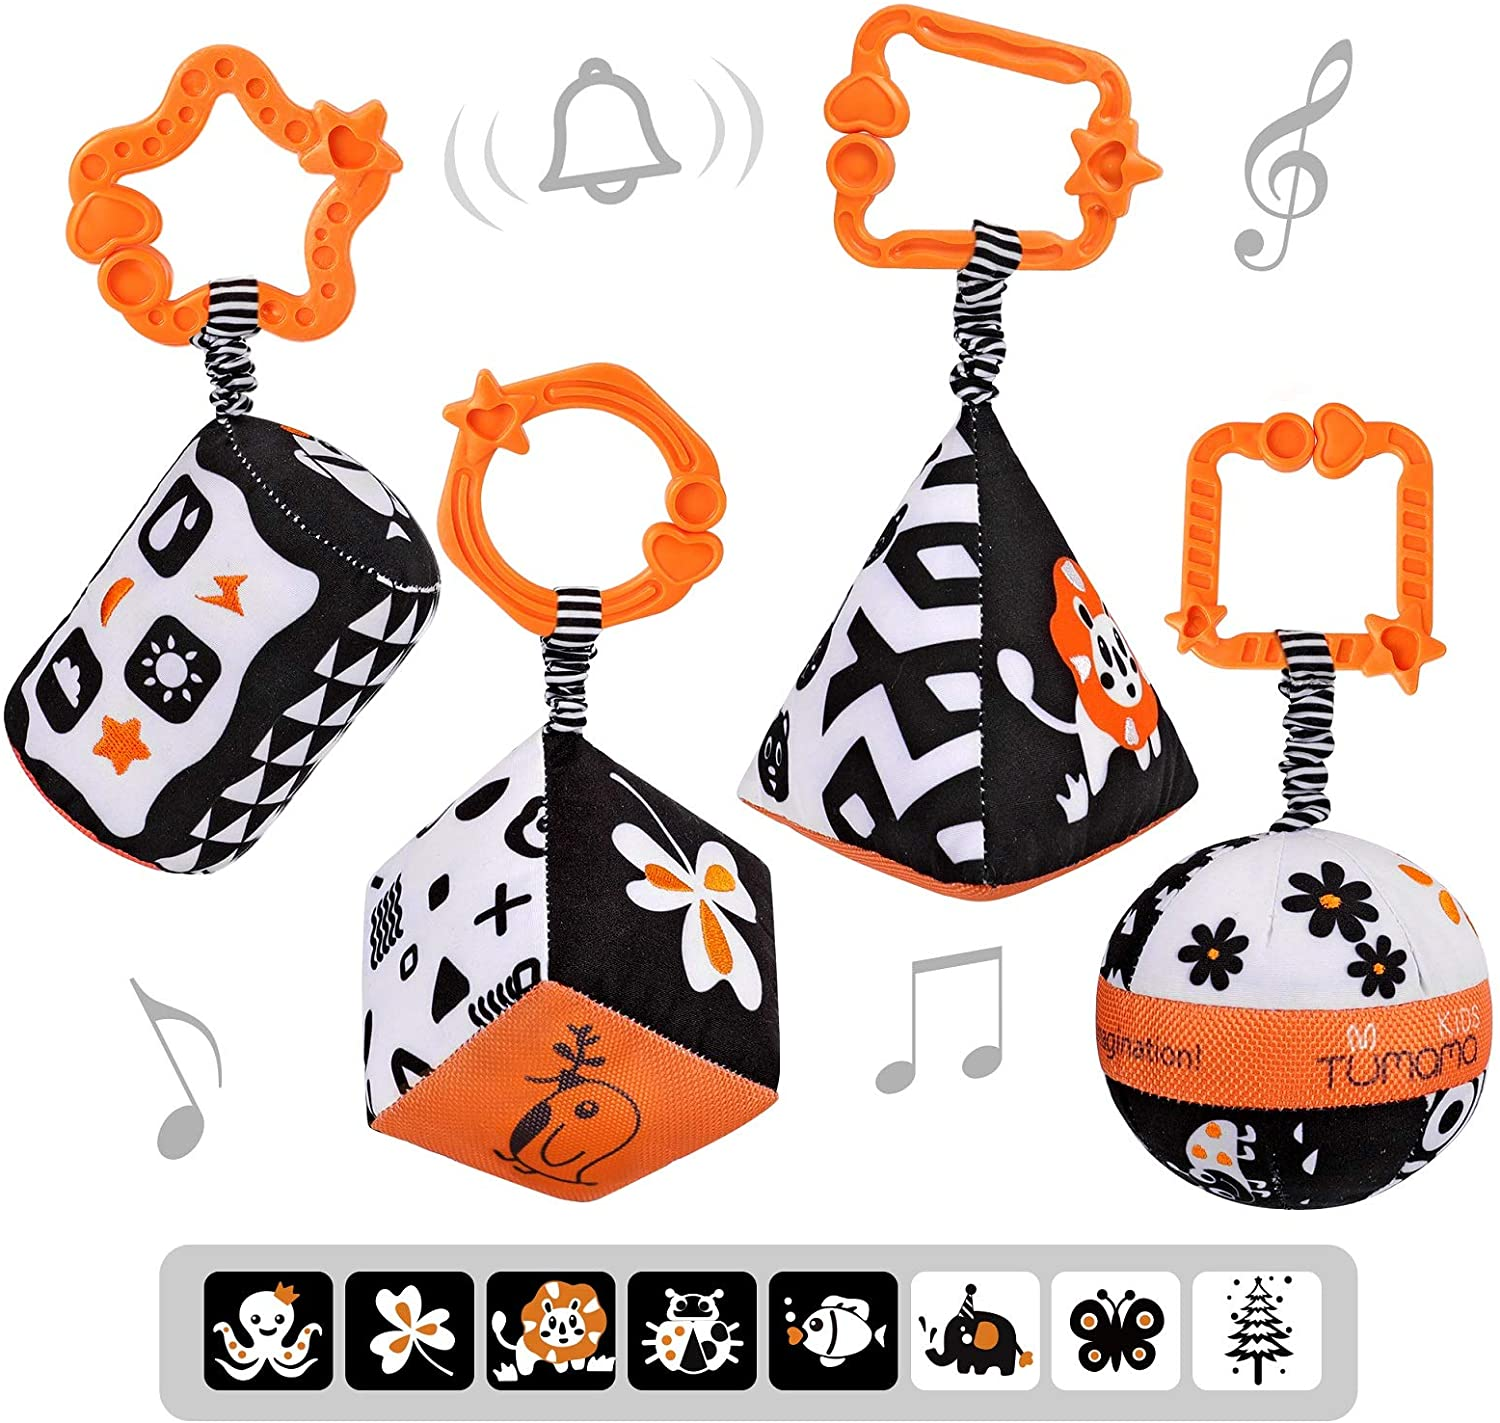 TUMAMA High Contrast Shapes Sets Baby Toys White Latest item Store and Black Stro